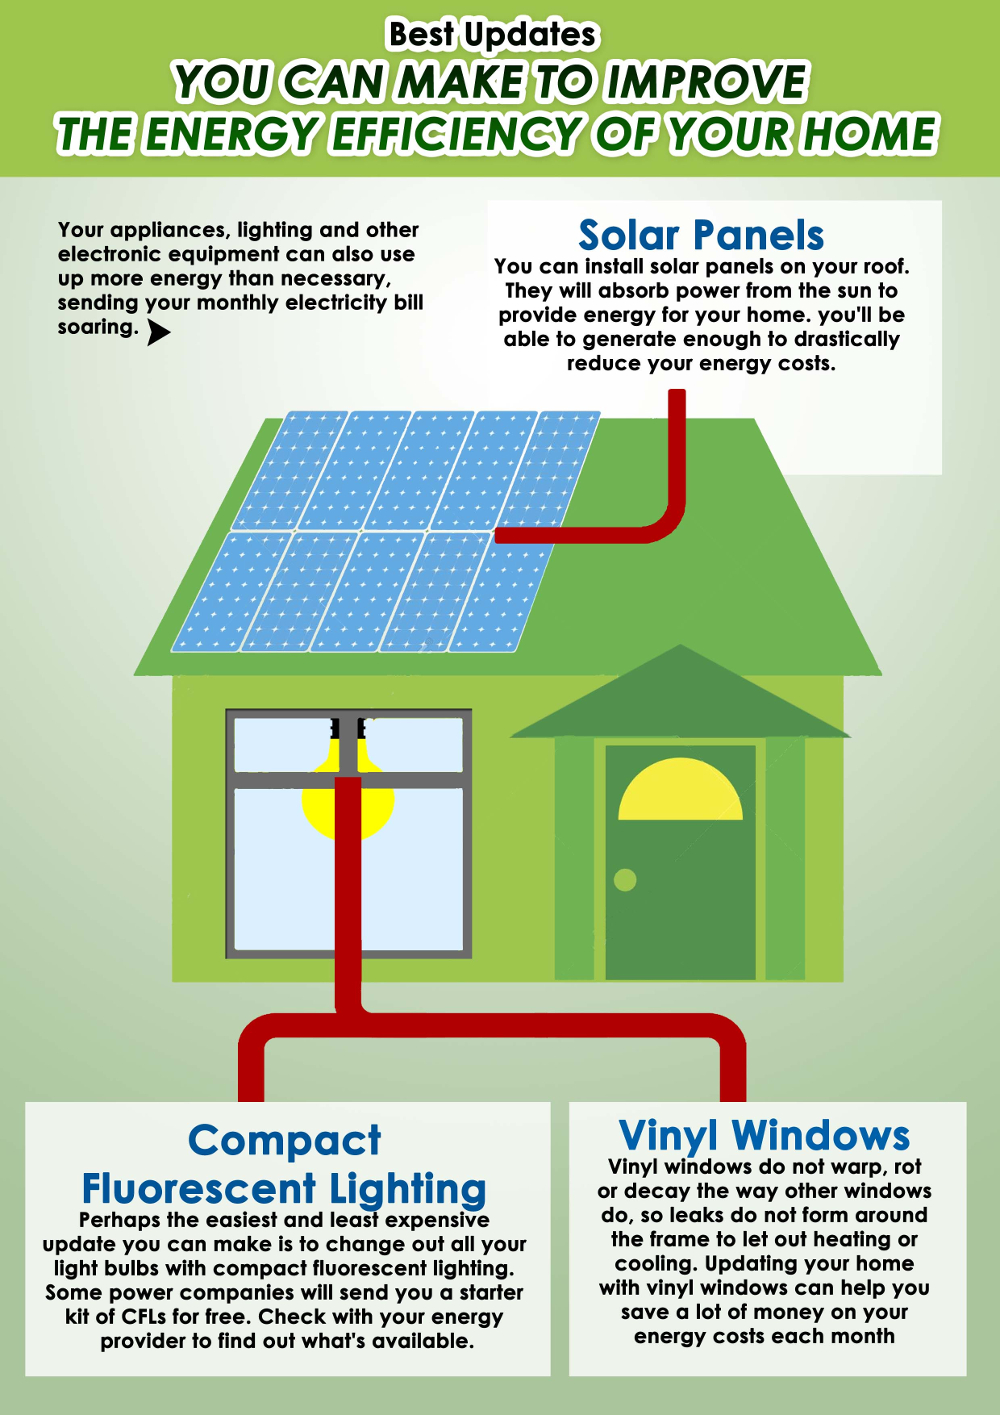 Best Updates You can Make to Improve the Energy Efficiency of Your Home